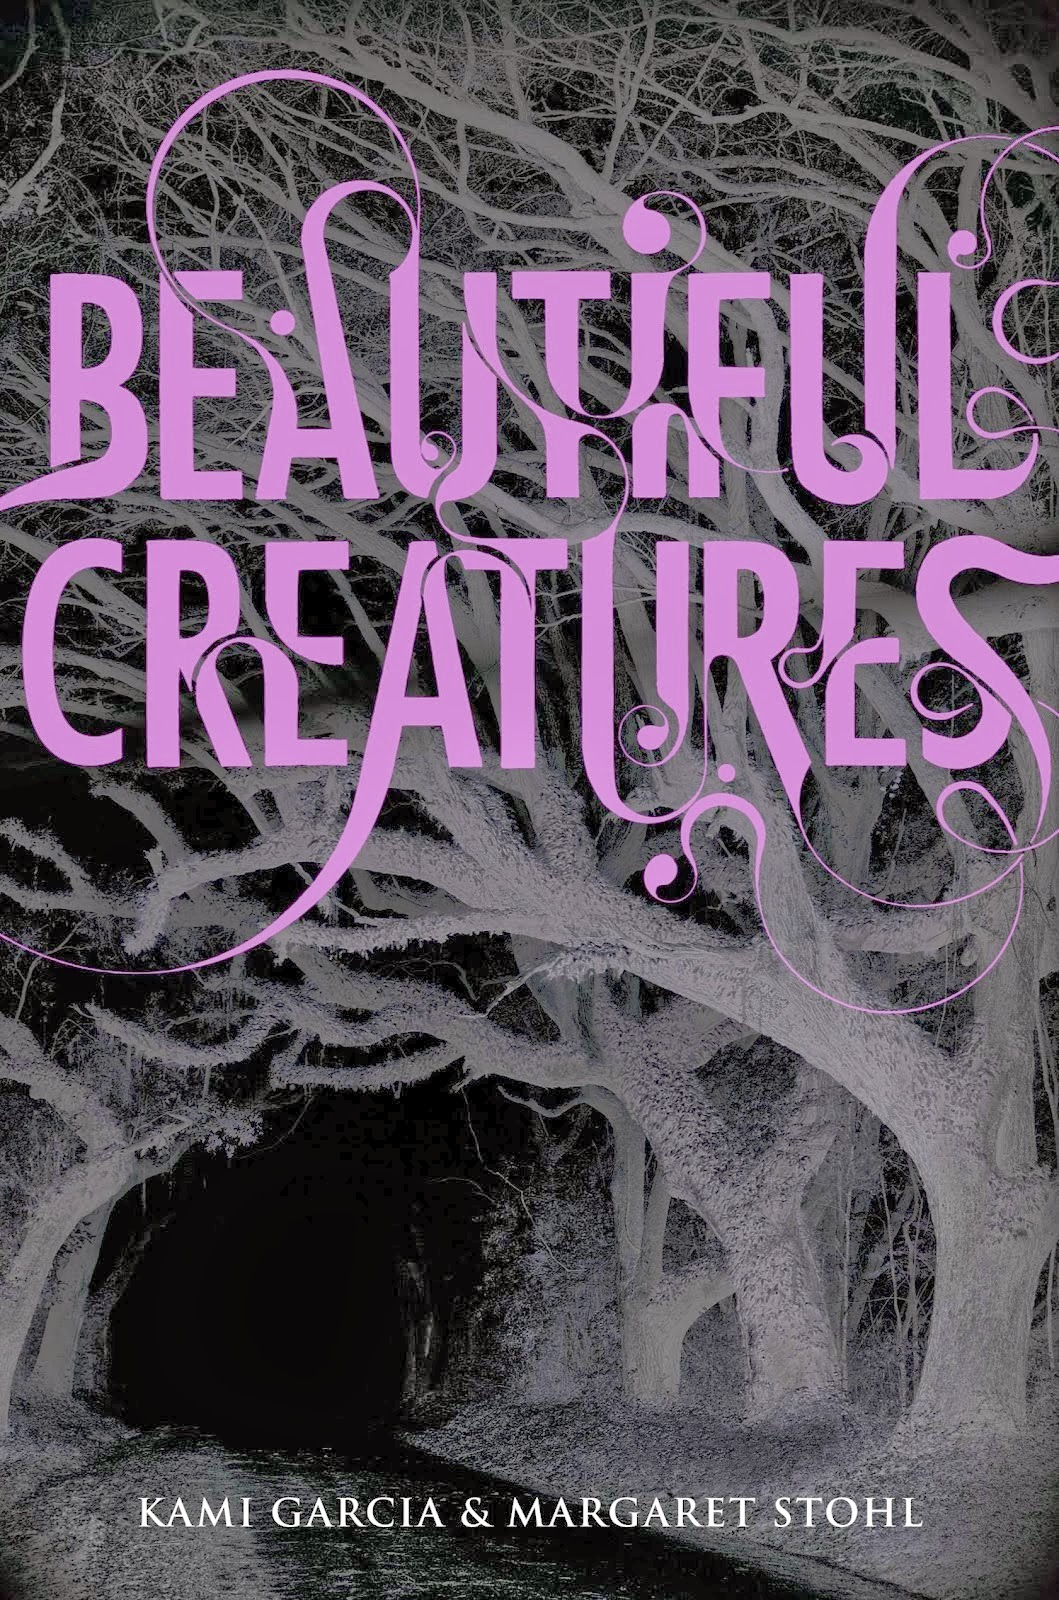 Beautiful Redemption Book Cover ~ The marionettes monsters saga movie tie in covers can